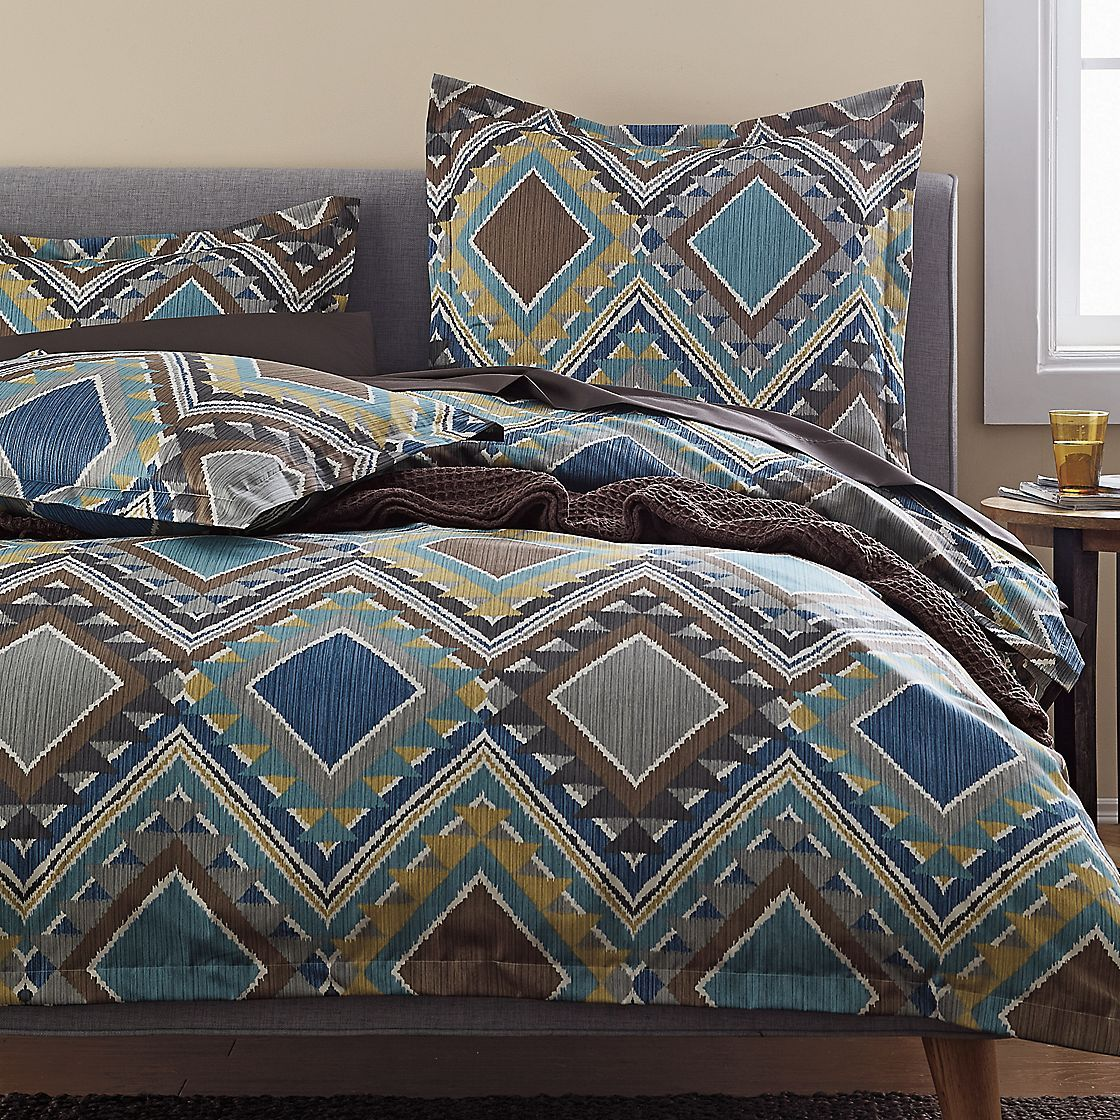 Java 300 Thread Count Wrinkle Free Duvet Cover | The Company Store